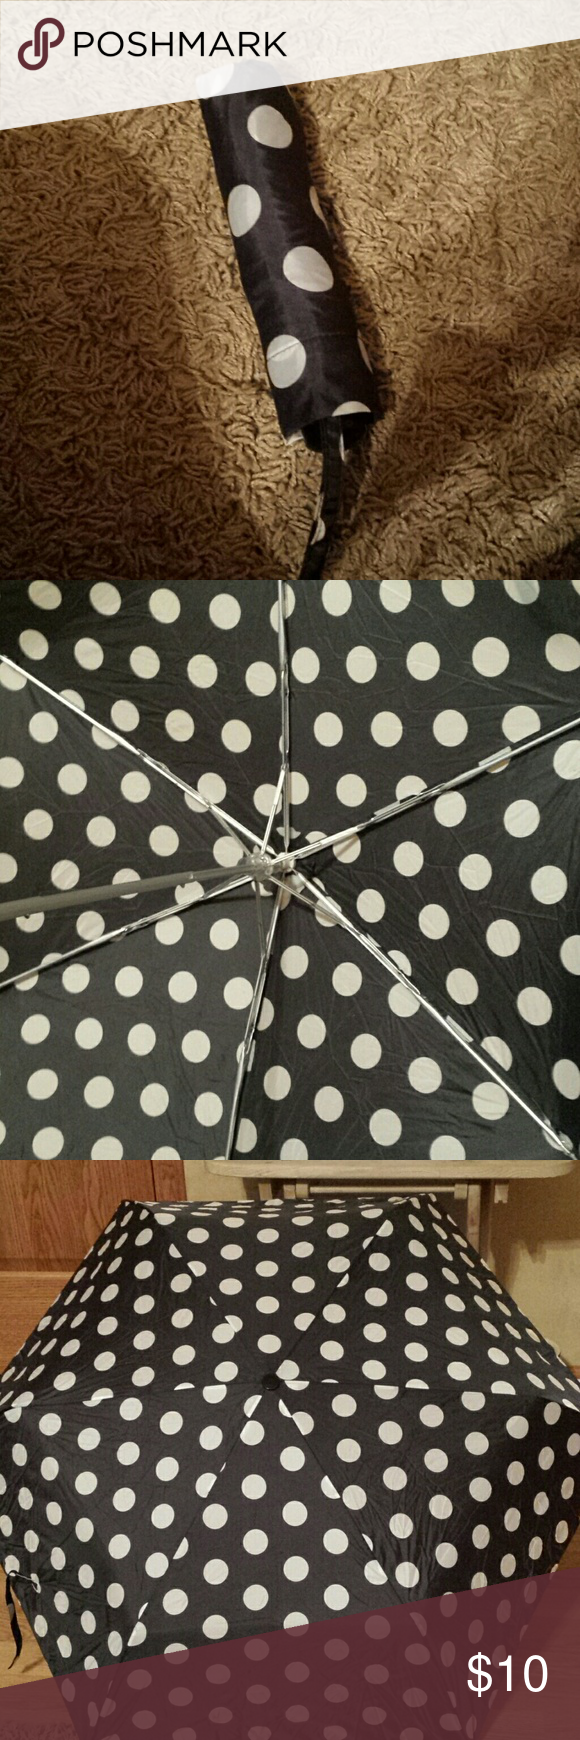 Cute umbrella Very cute umbrella in perfect condition, NWOT H&M Accessories Umbrellas #cuteumbrellas